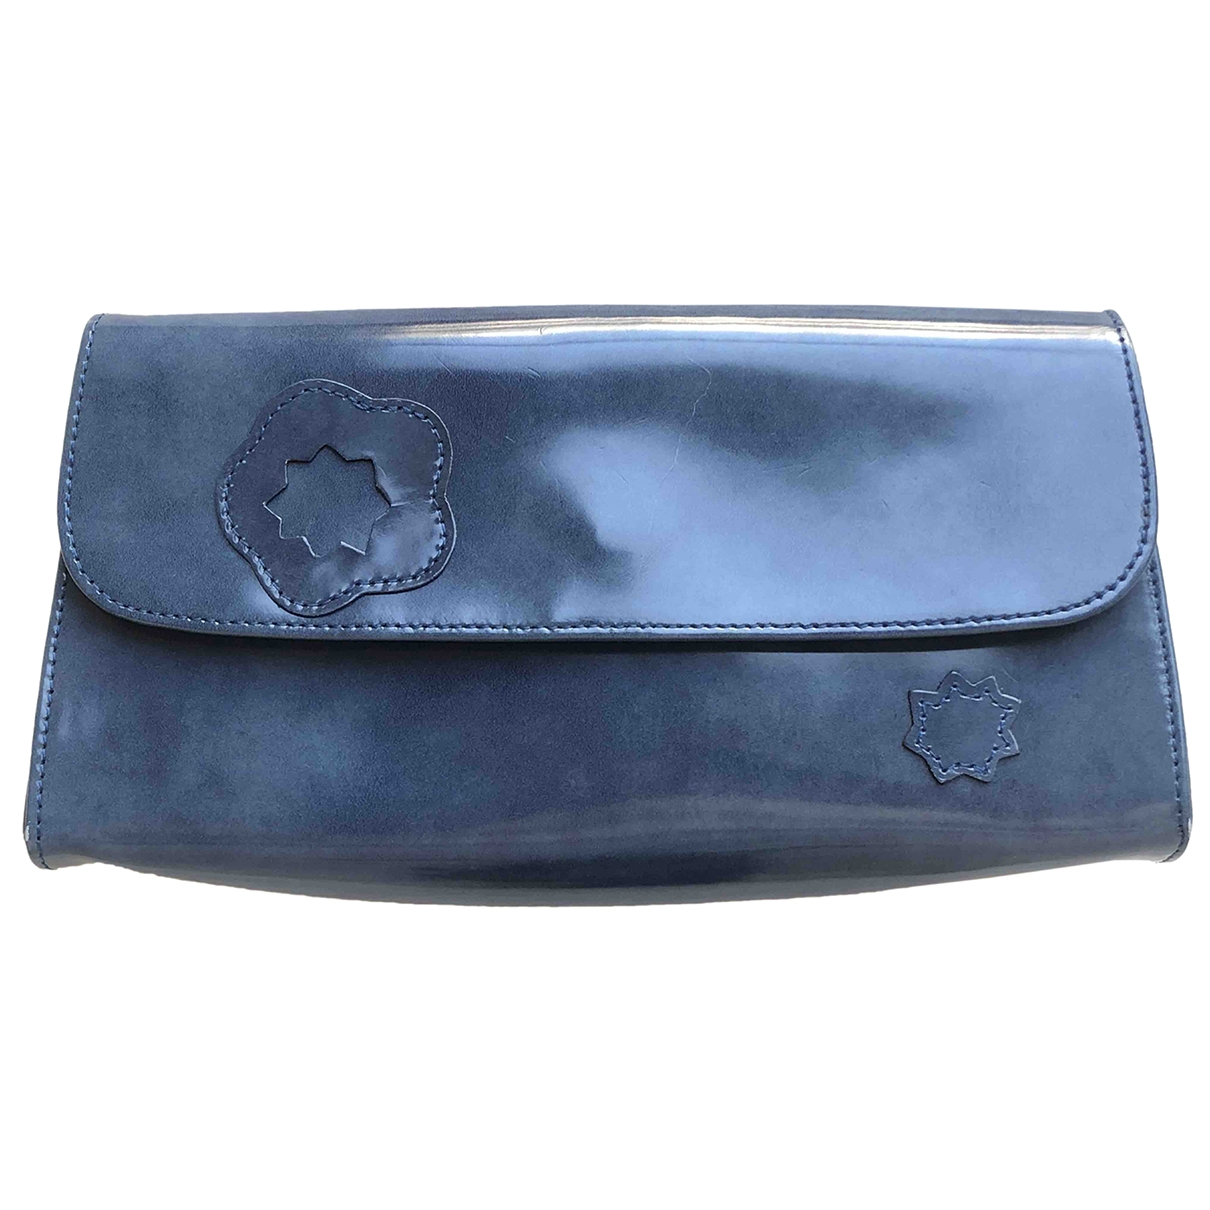 Longchamp \N Metallic Patent leather Clutch bag for Women \N